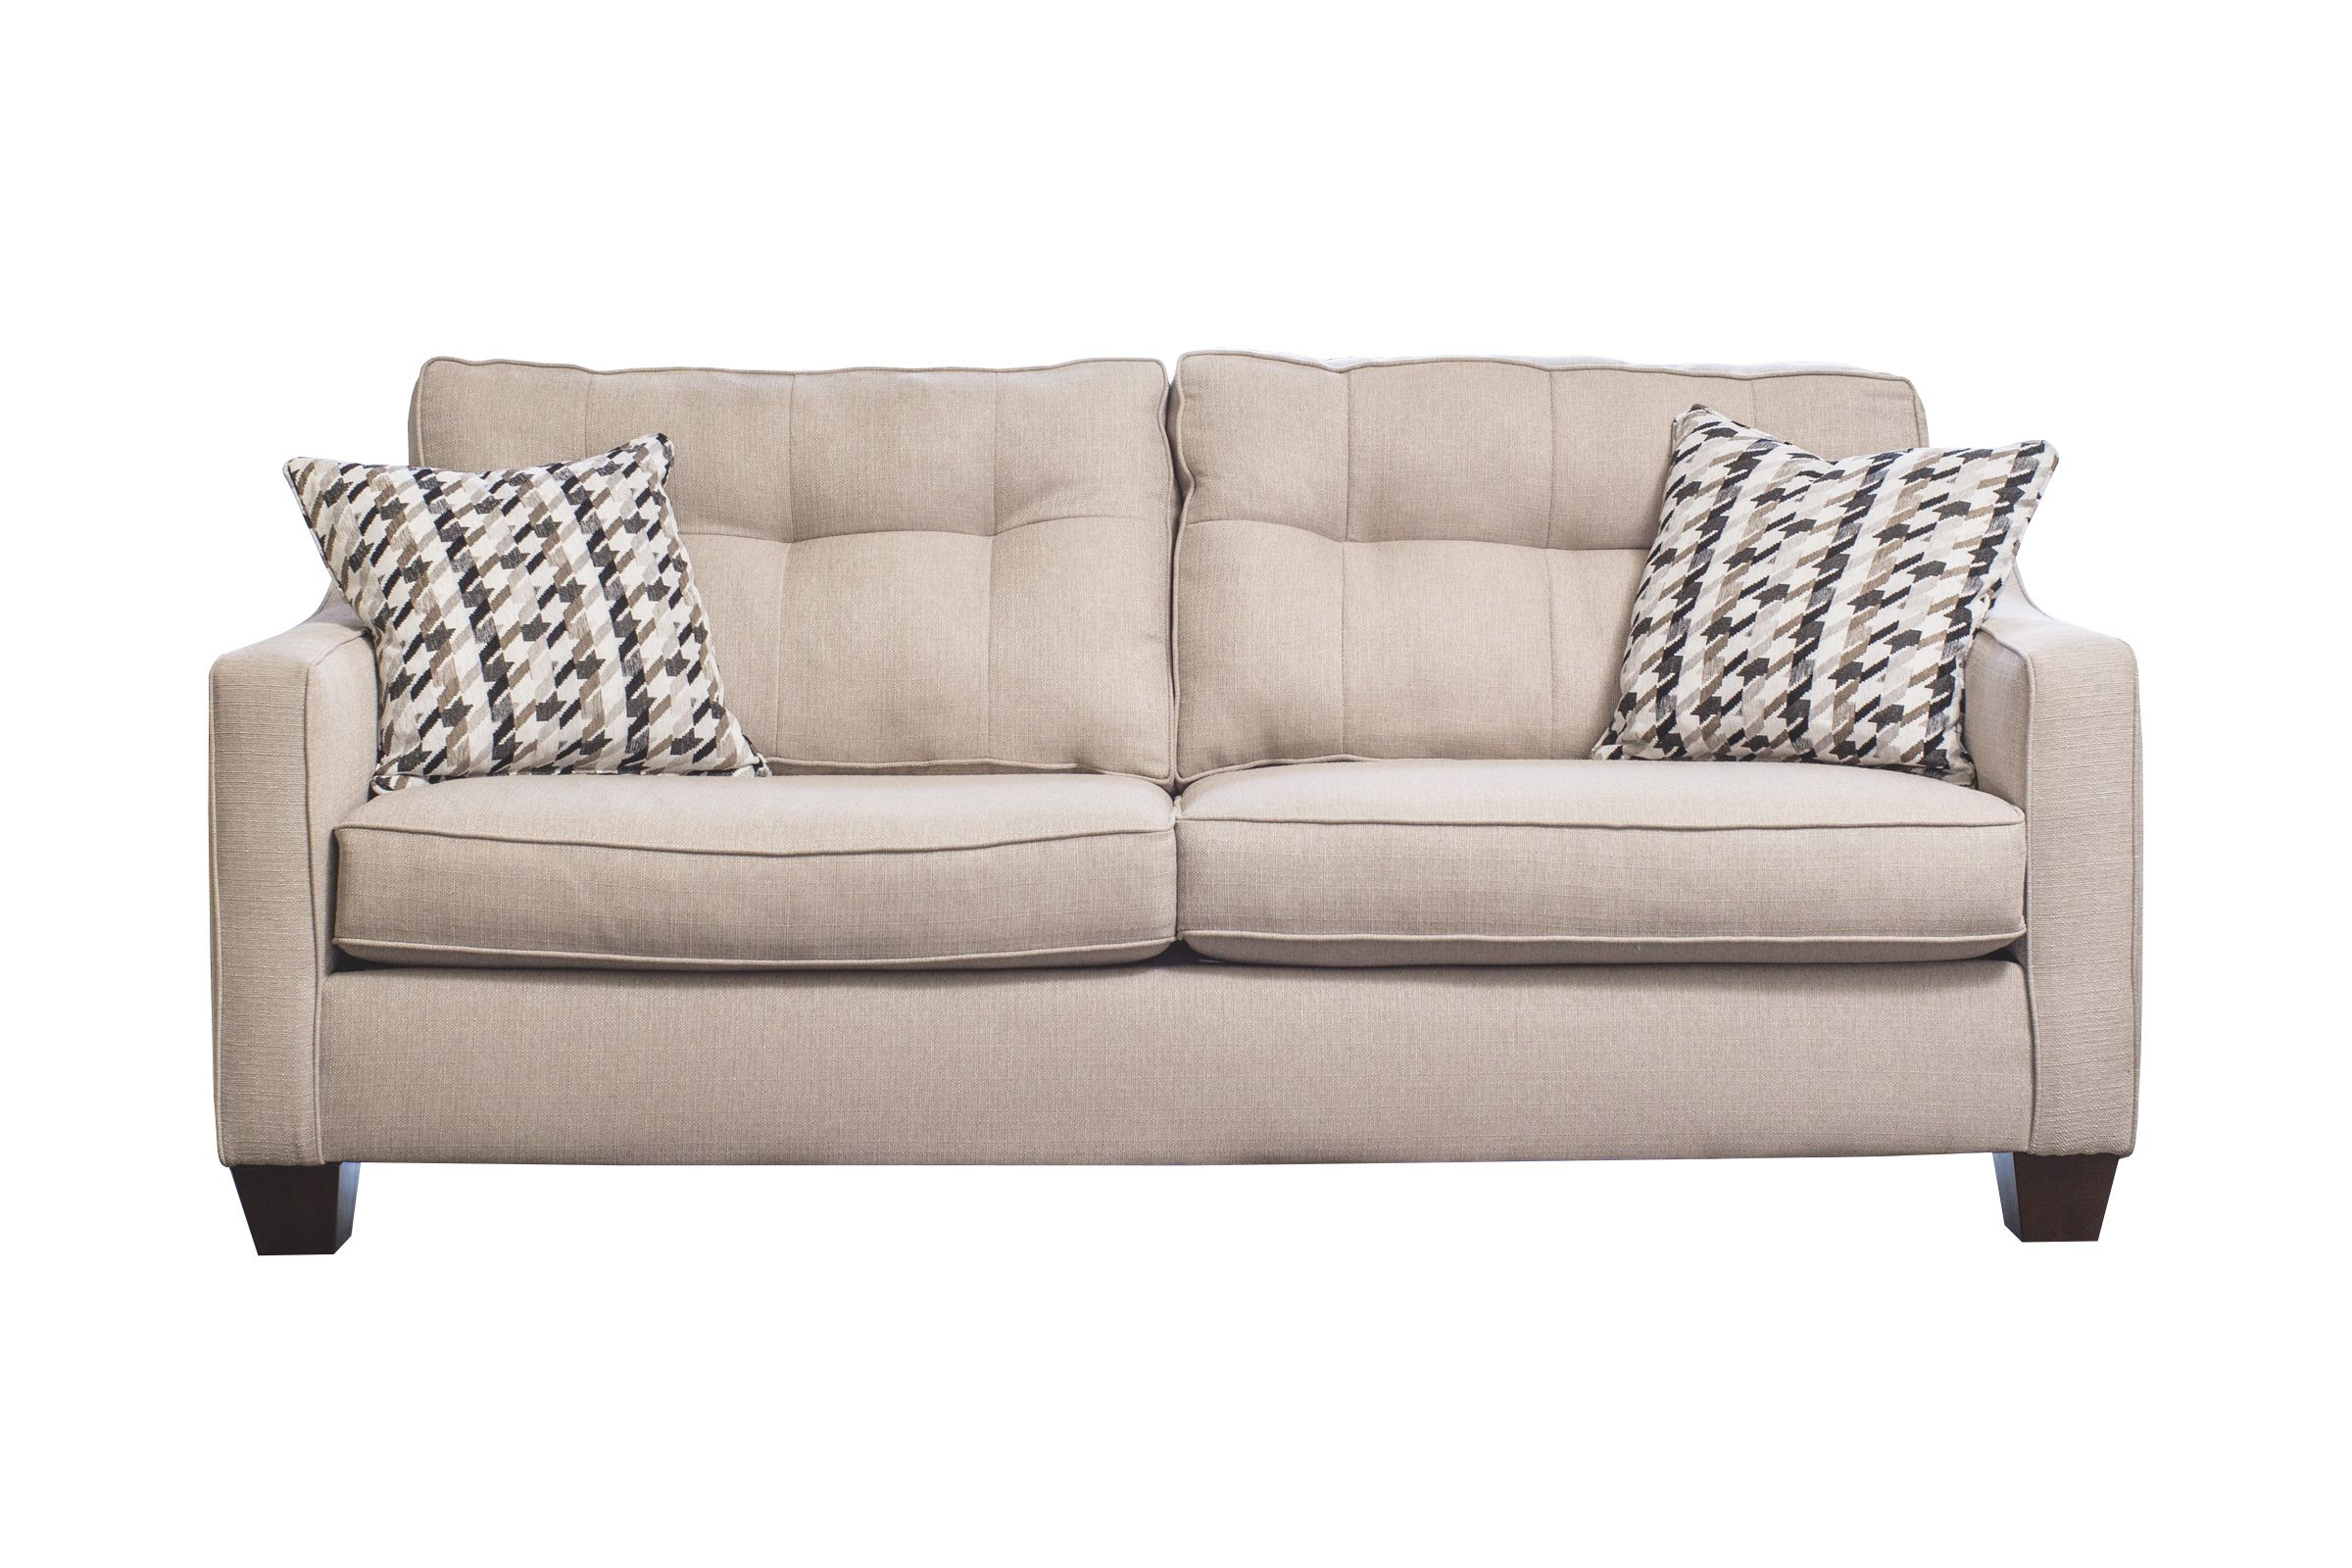 Featured Steal England Sofa Now $799.99 $639.99 + We Pay Your Tax